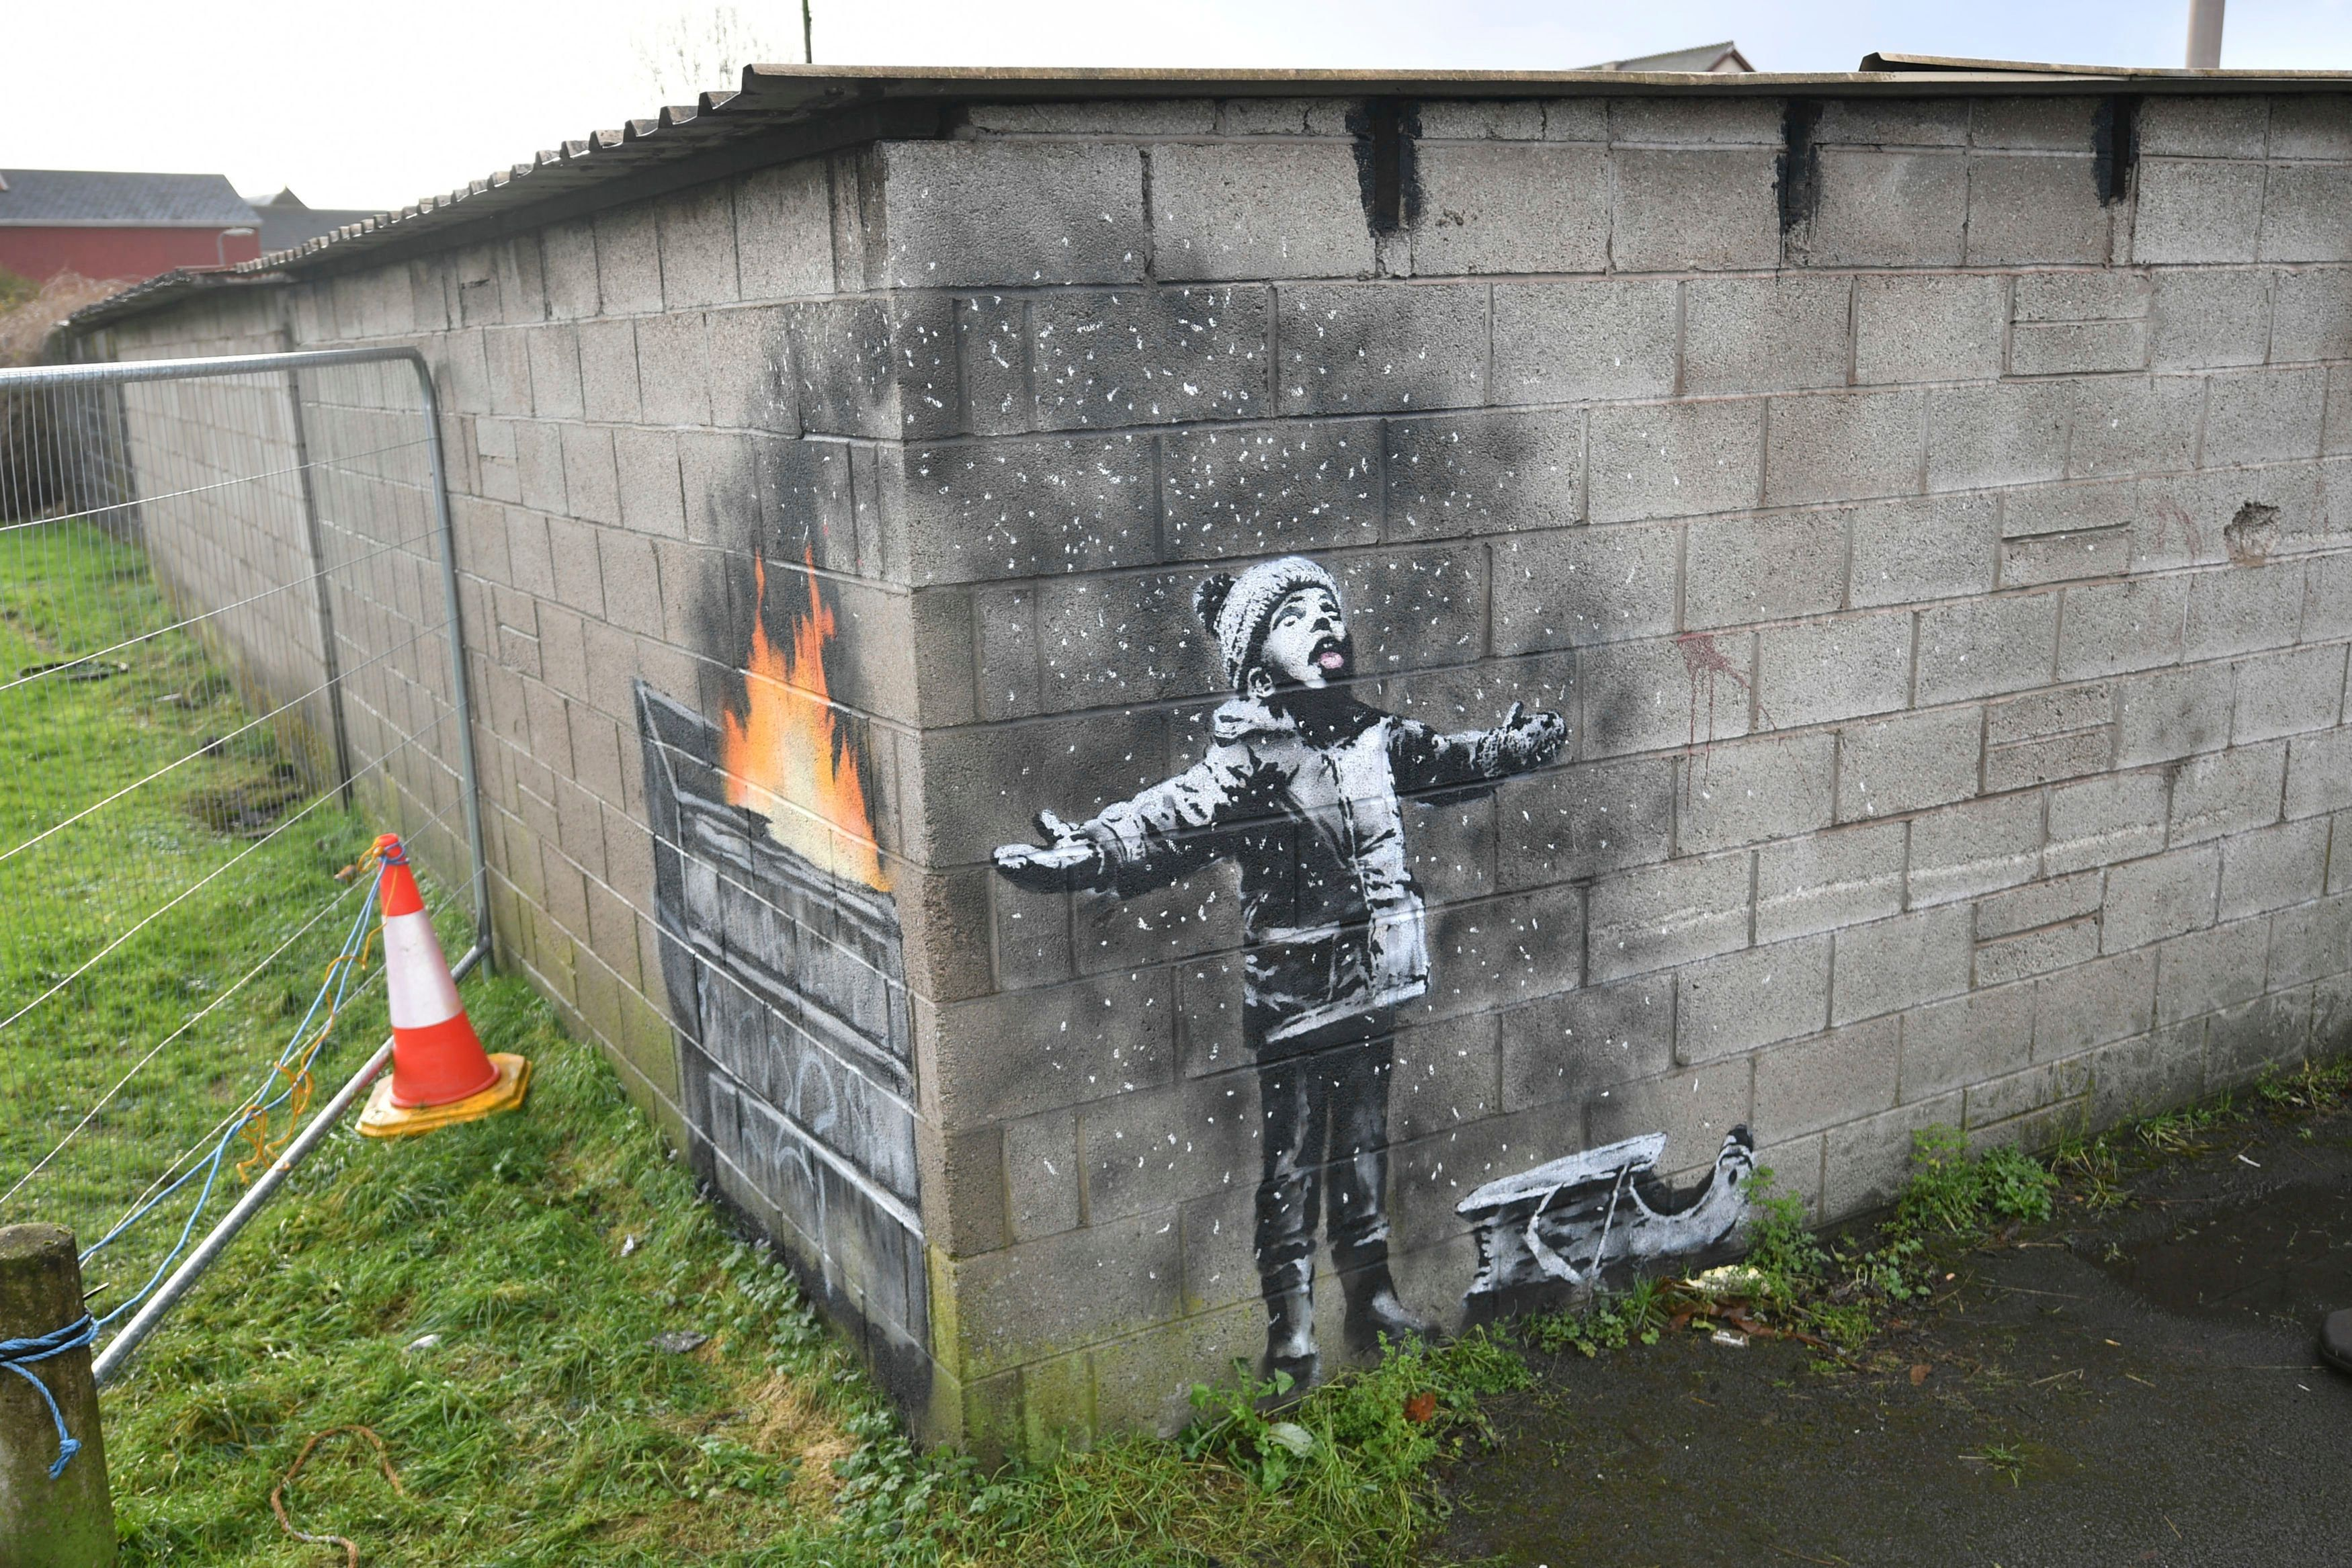 Locals inPort Talbot, Wales, first spotted the mural on